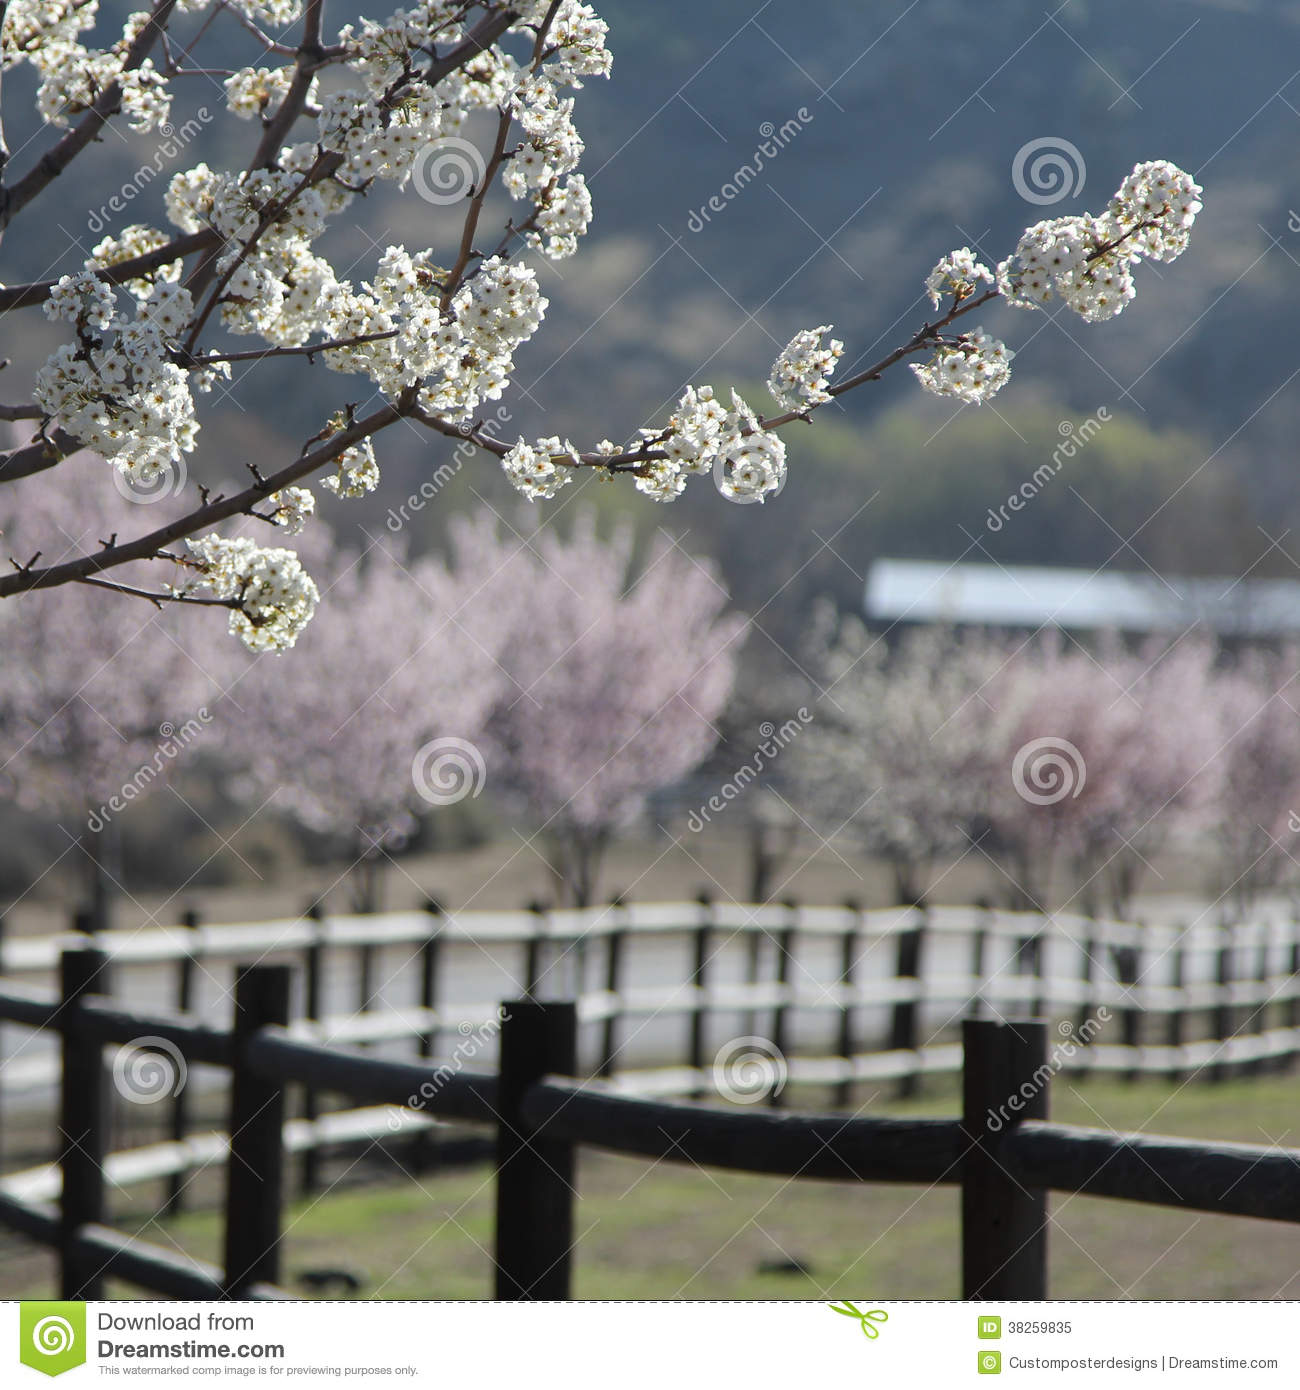 Download Focused Trees Flowering With A Blurred Background. Stock Image - Image of tree, trees: 38259835